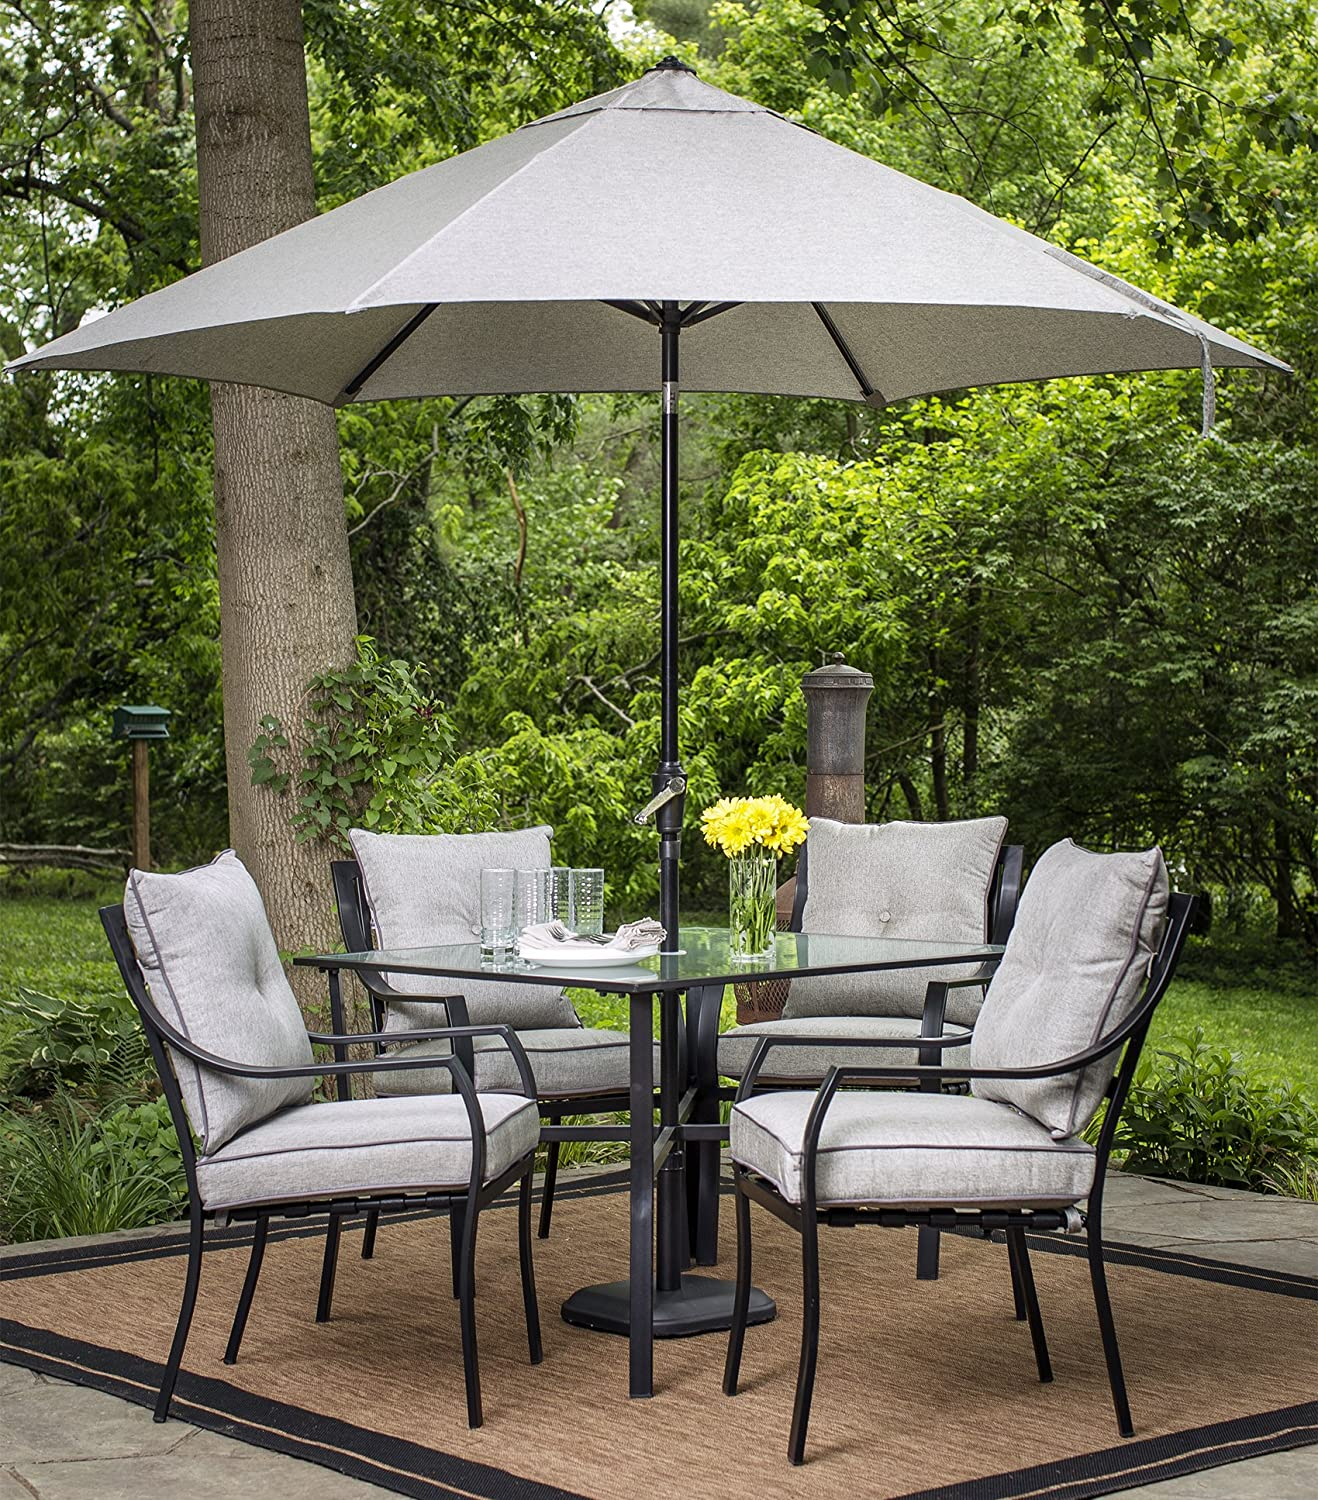 Amazon com hanover lavalletteumb table umbrella for the lavallette collection outdoor dining set garden outdoor